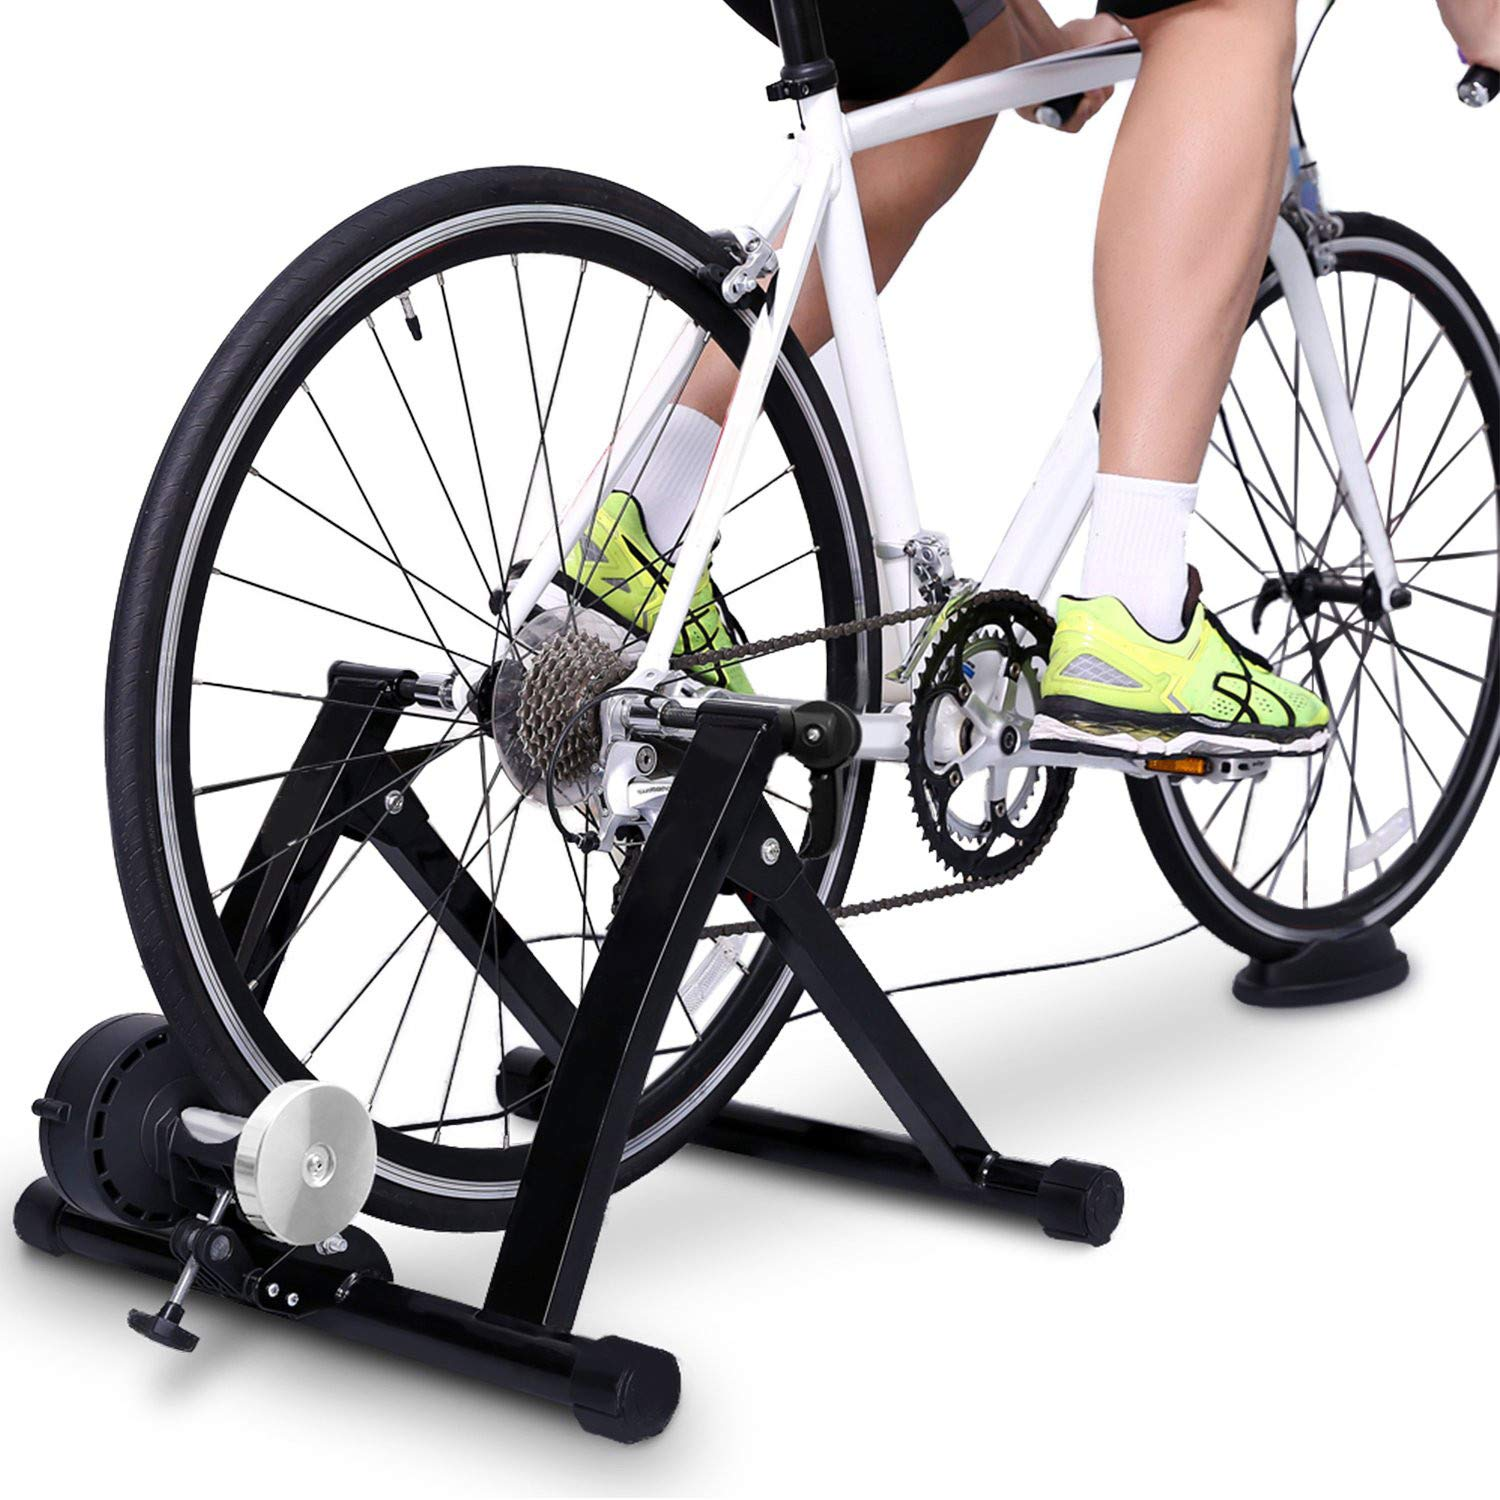 serryNICE Bike Trainer Stand Magnetic Bicycle Stationary Stand for Indoor Exercise (Black, B) by serryNICE